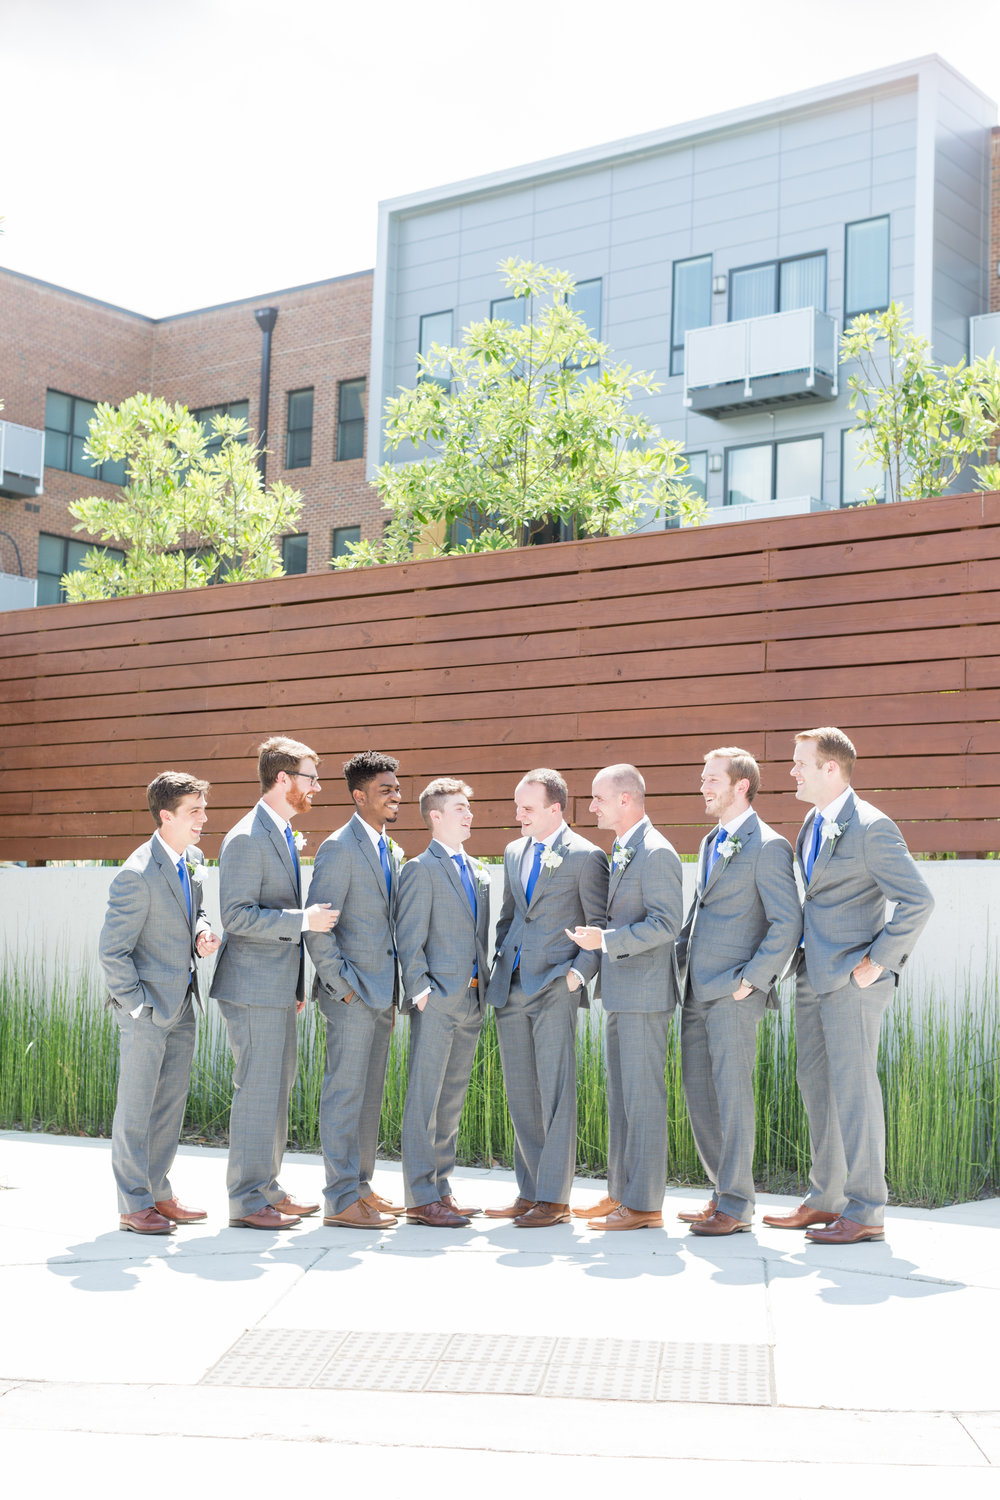 Look at our groom and his groomsmen looking quite dapper!